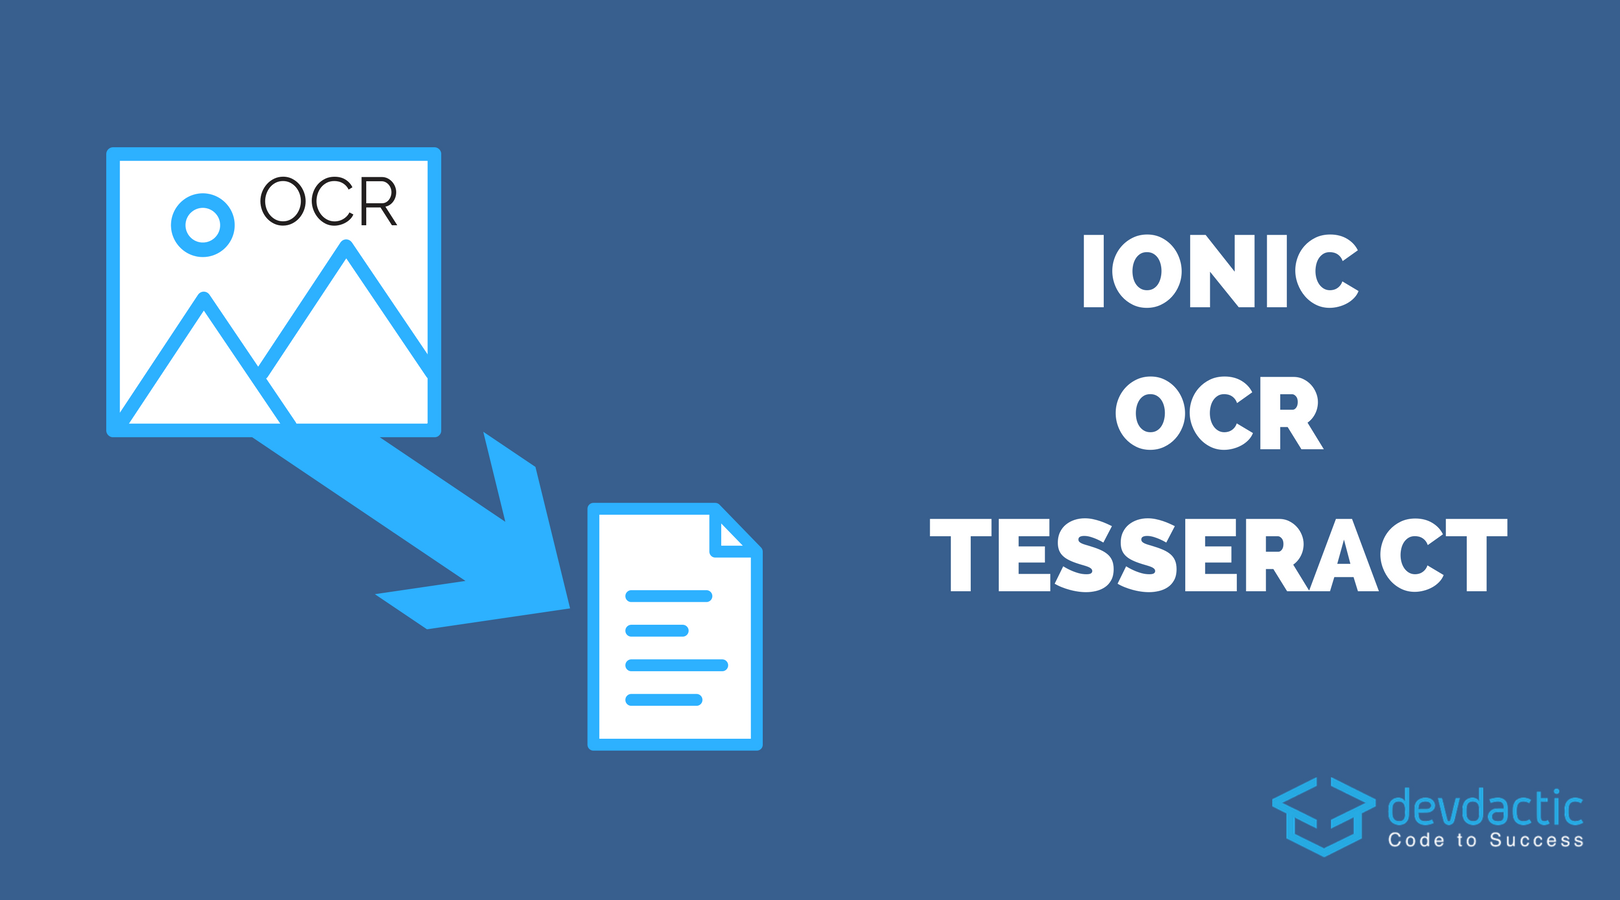 Building an Ionic OCR App with Tesseract - Devdactic